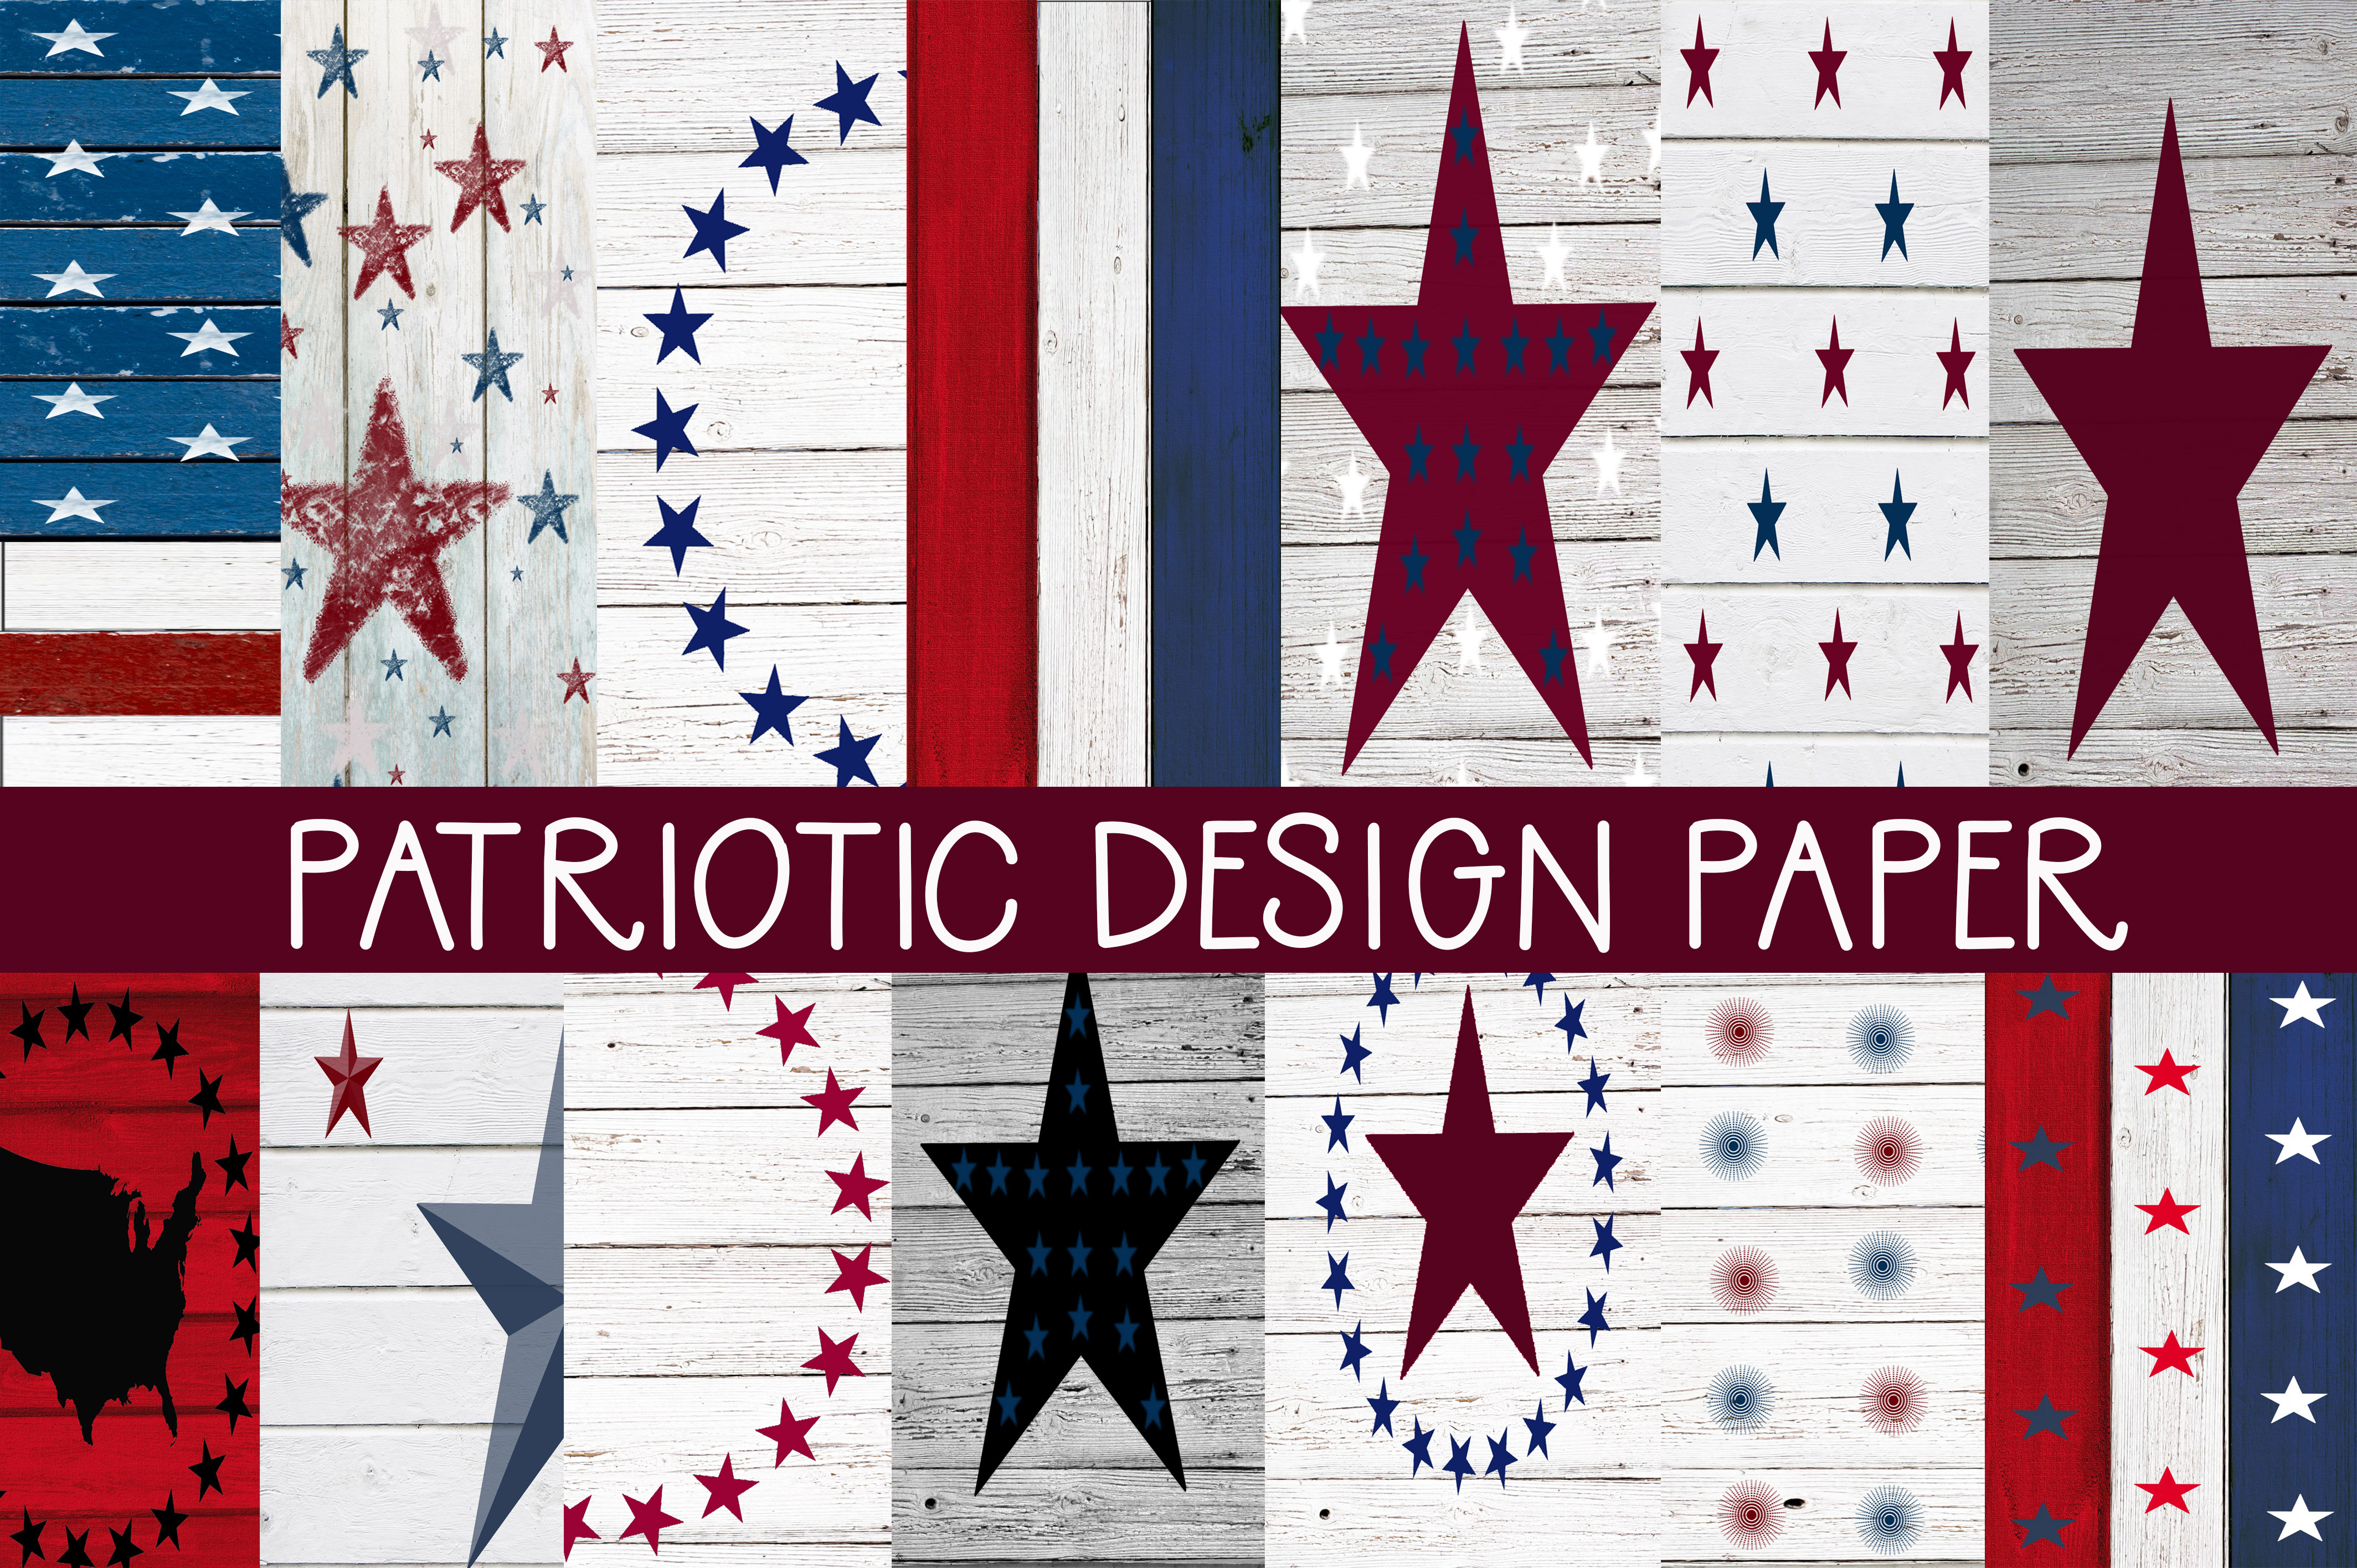 Download Free Patriotic Design Papers Graphic By Capeairforce Creative Fabrica for Cricut Explore, Silhouette and other cutting machines.